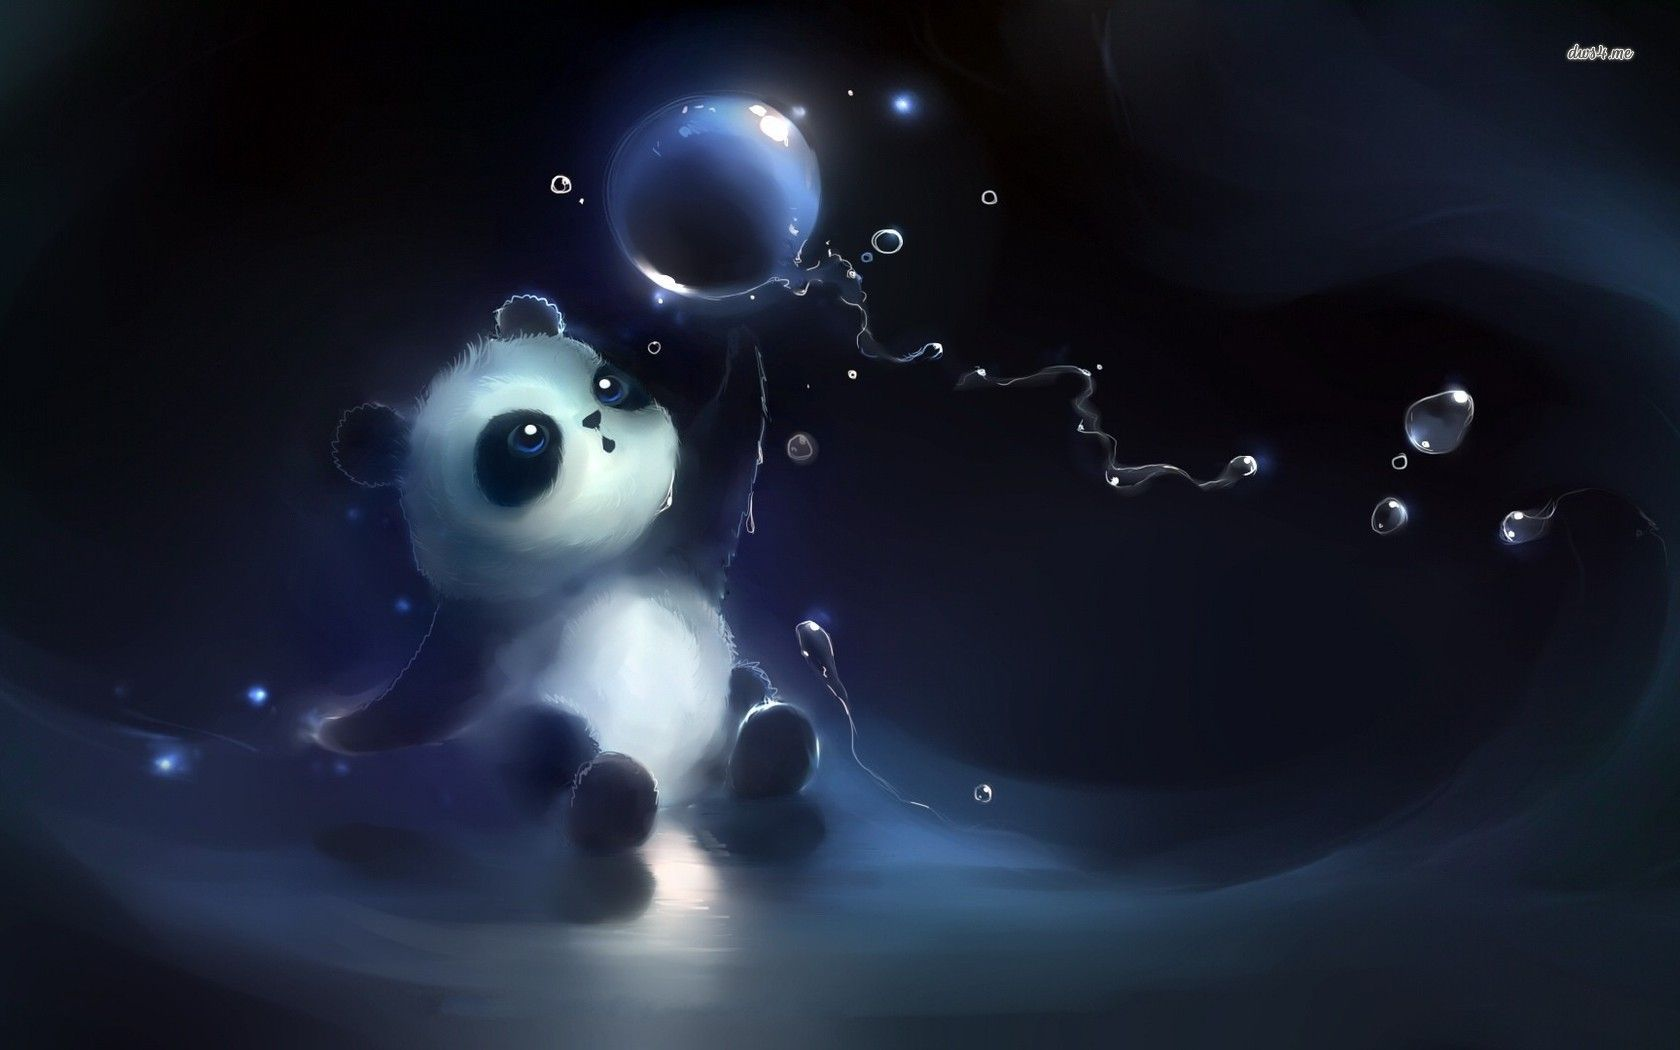 Collection Of Baby Panda Wallpaper On Hdwallpapers 1680 1050 Cute Baby Panda Wallpapers 57 Wallpapers Cute Panda Wallpaper Panda Background Panda Wallpapers